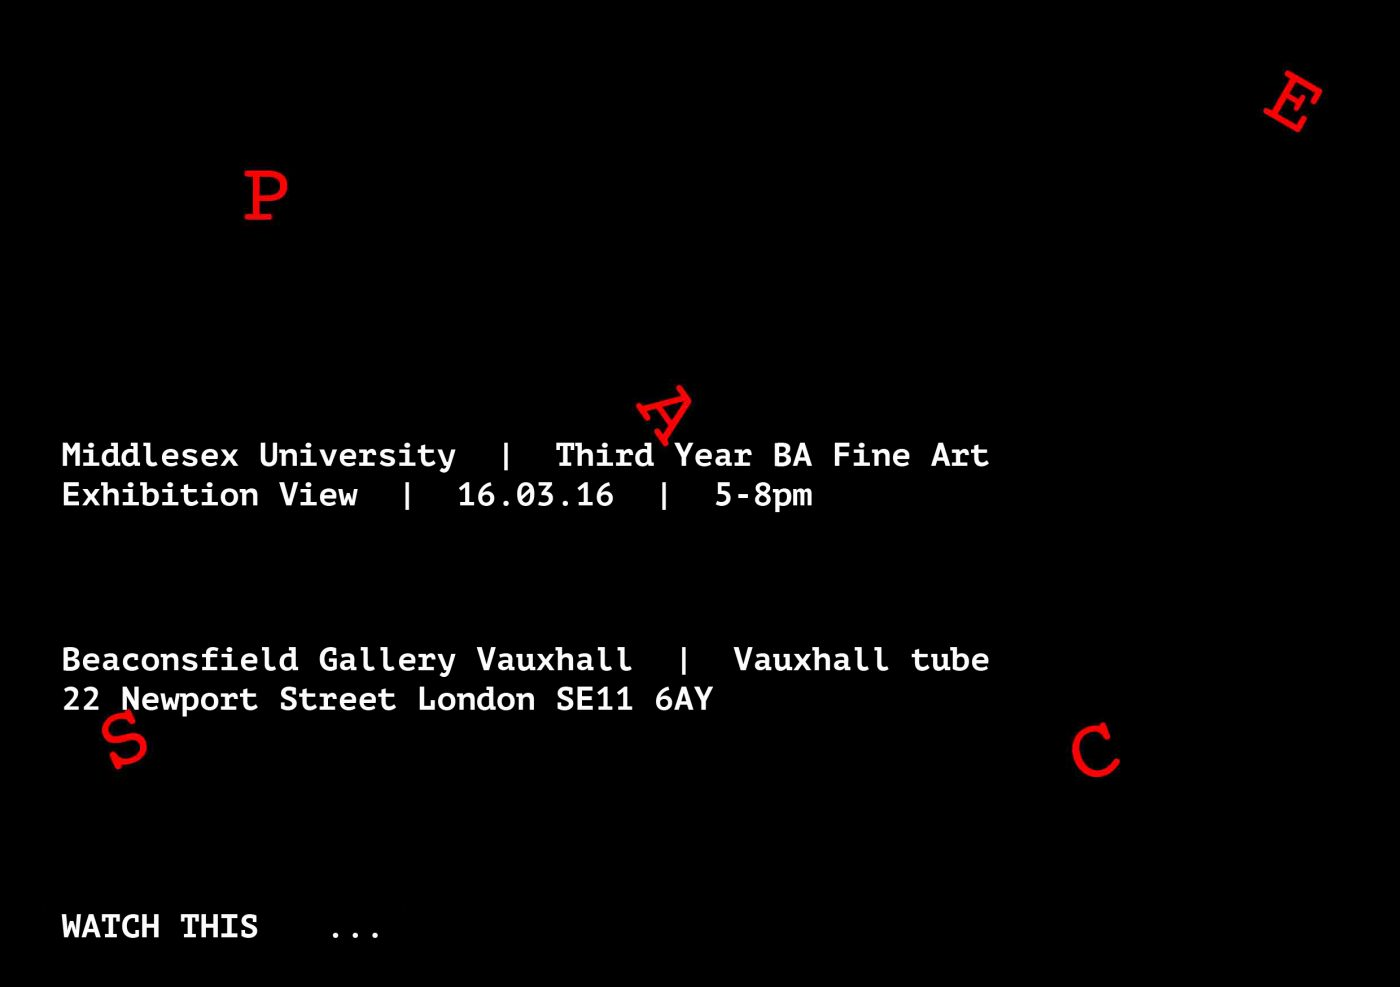 Watch This Space: Middlesex University Third Year Fine Art